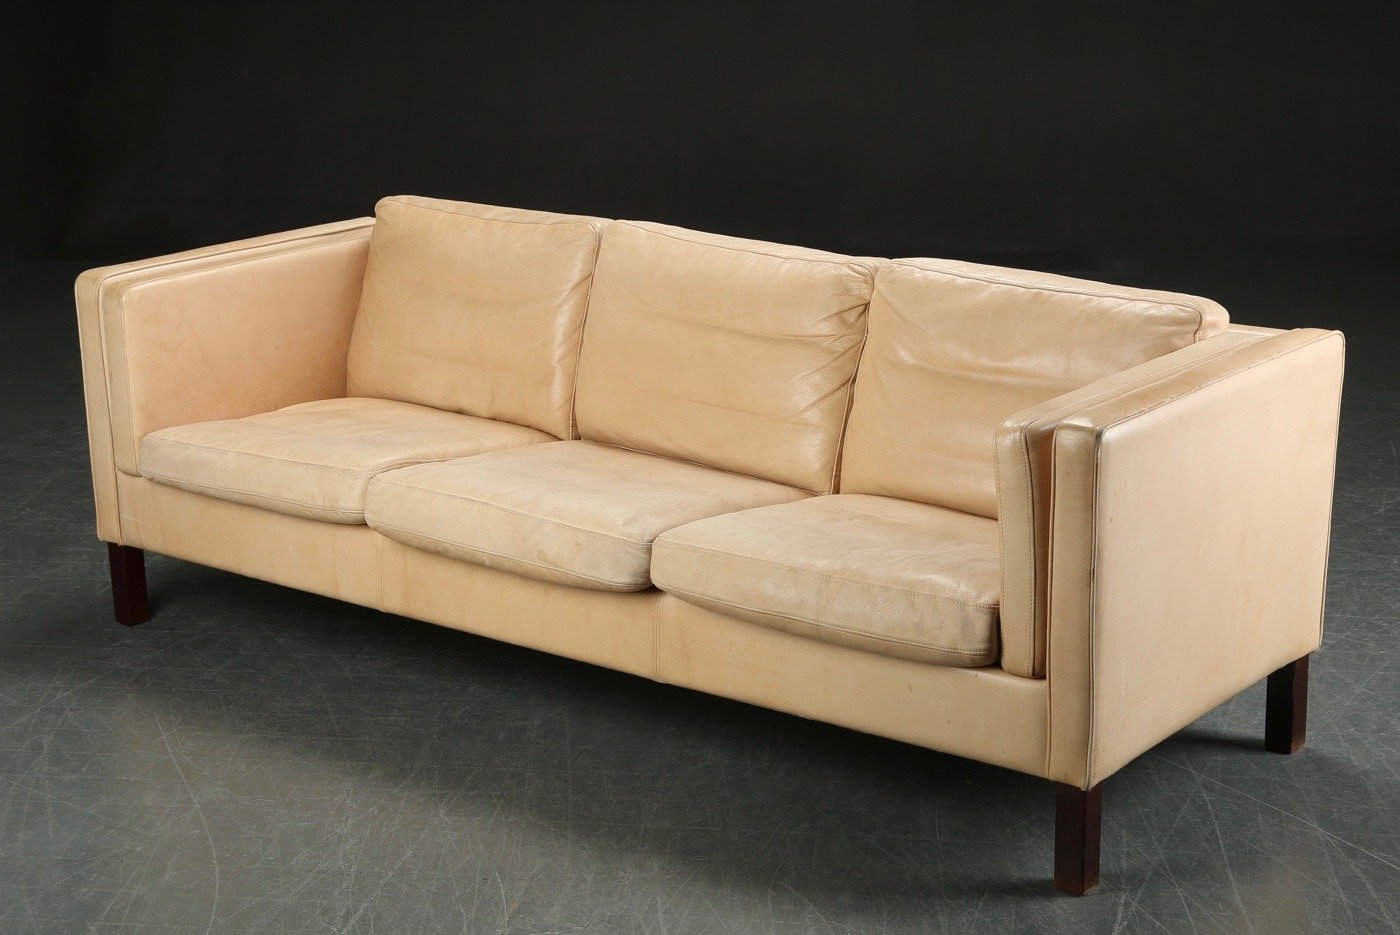 Vintage danish long cream leather sofa for sale at pamono for Long couches for sale